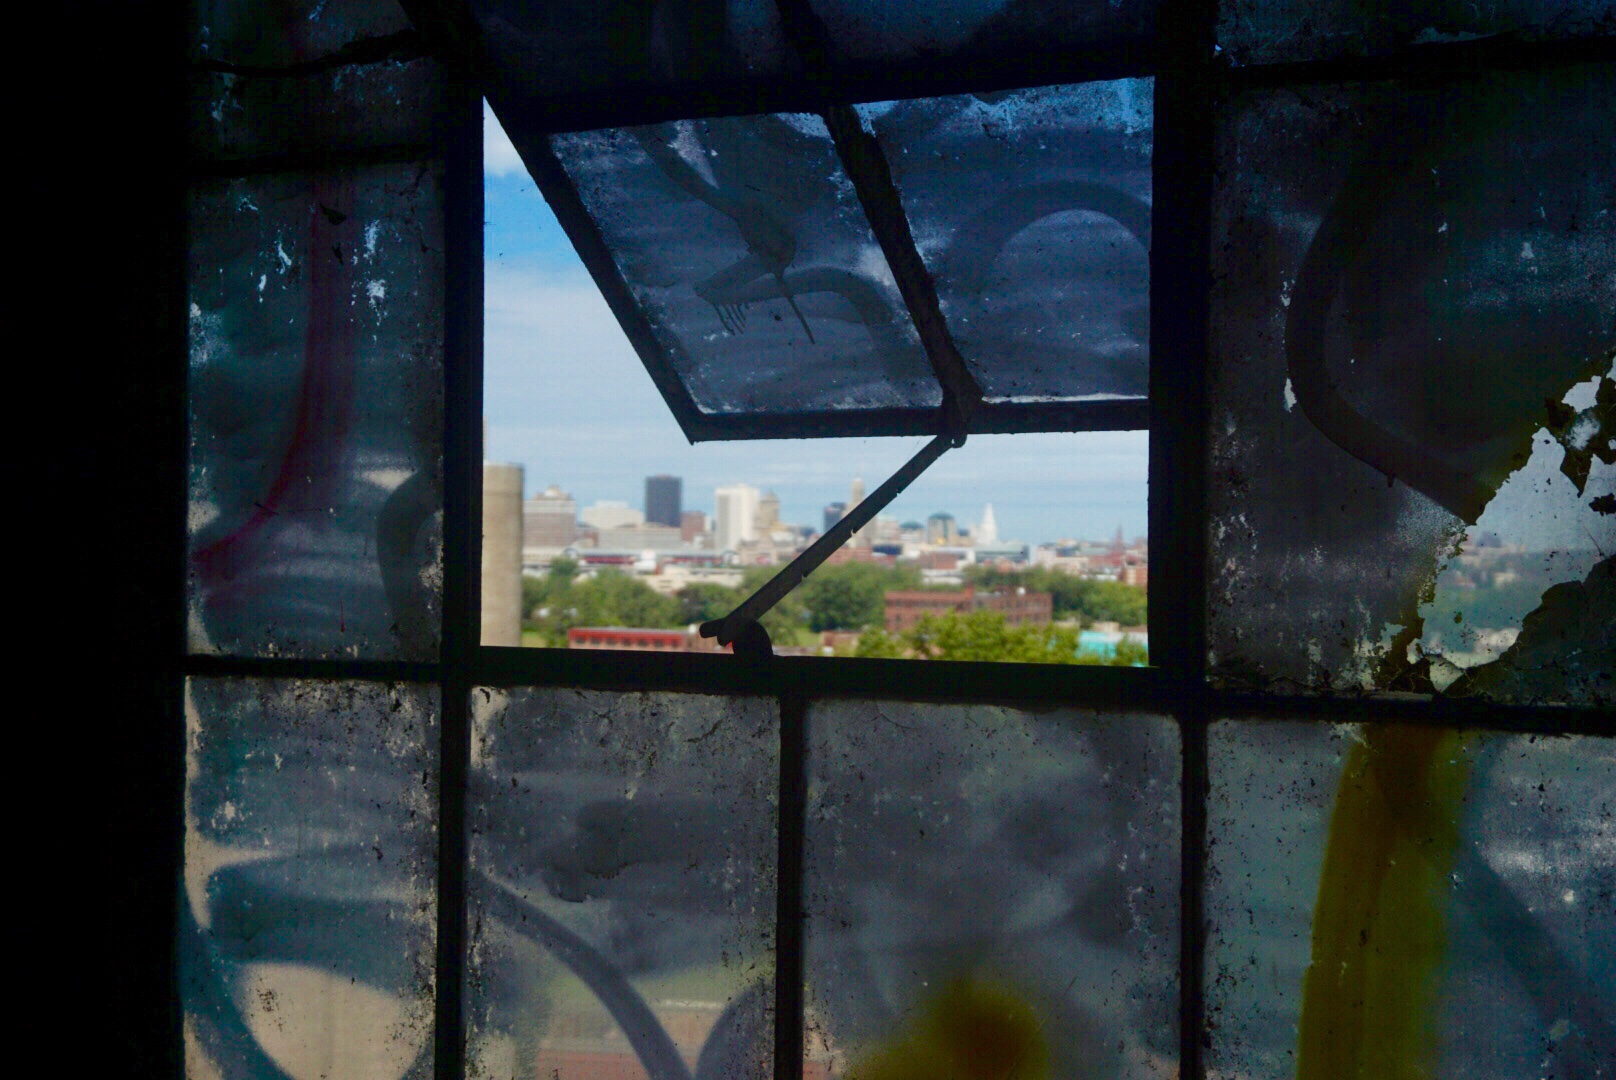 A small glimpse of Buffalo from the windows of the silos